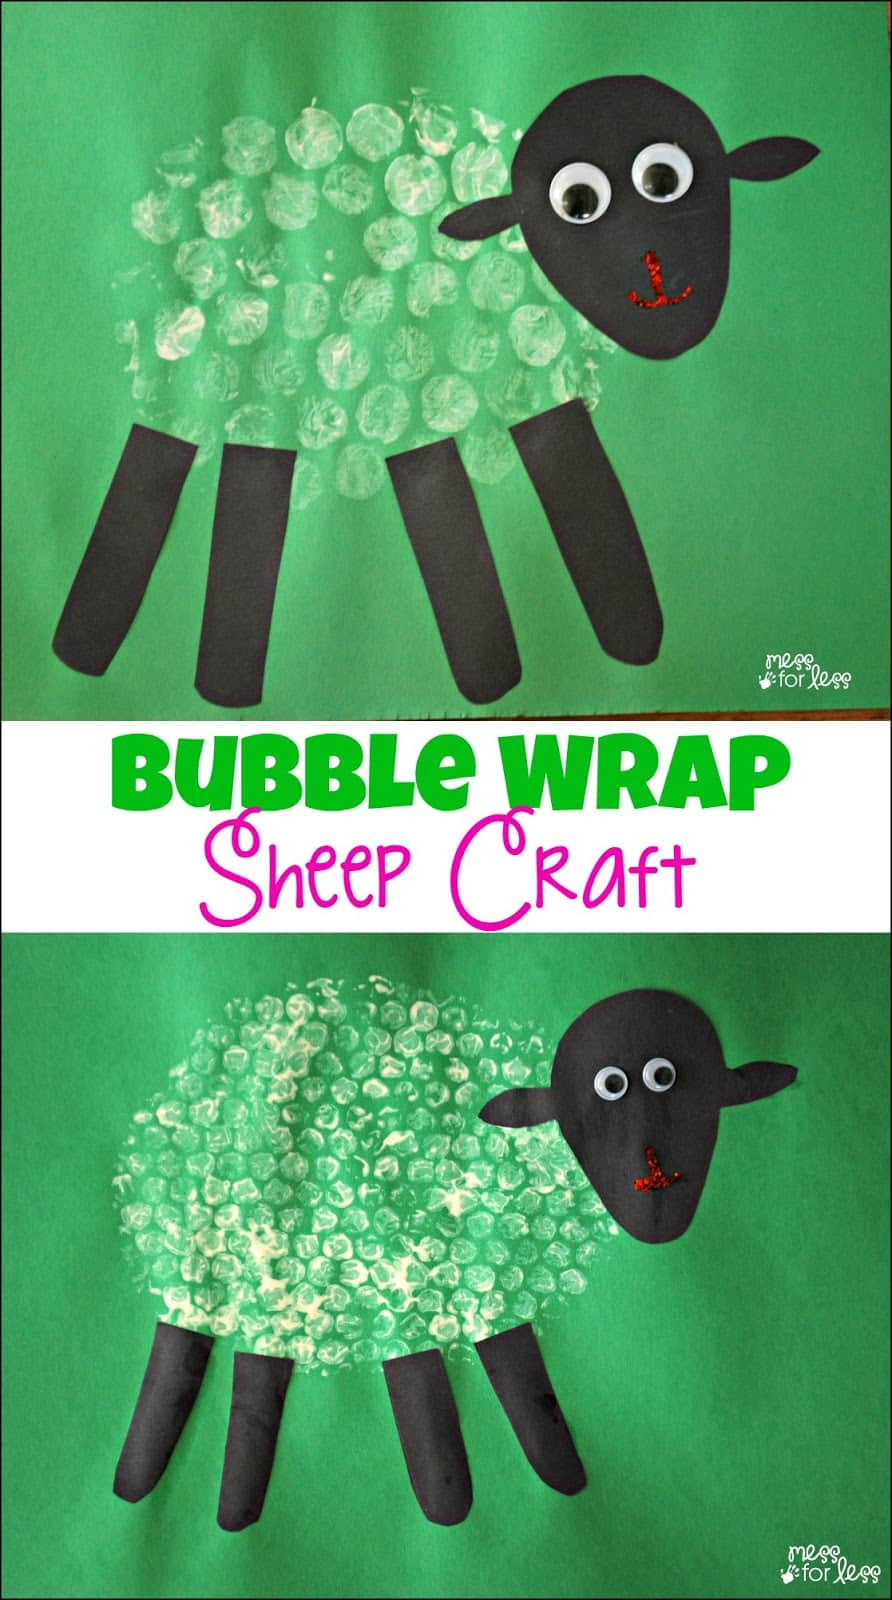 Bubble Wrap Sheep Craft - the perfect Spring craft for kids! Great for Easter too!